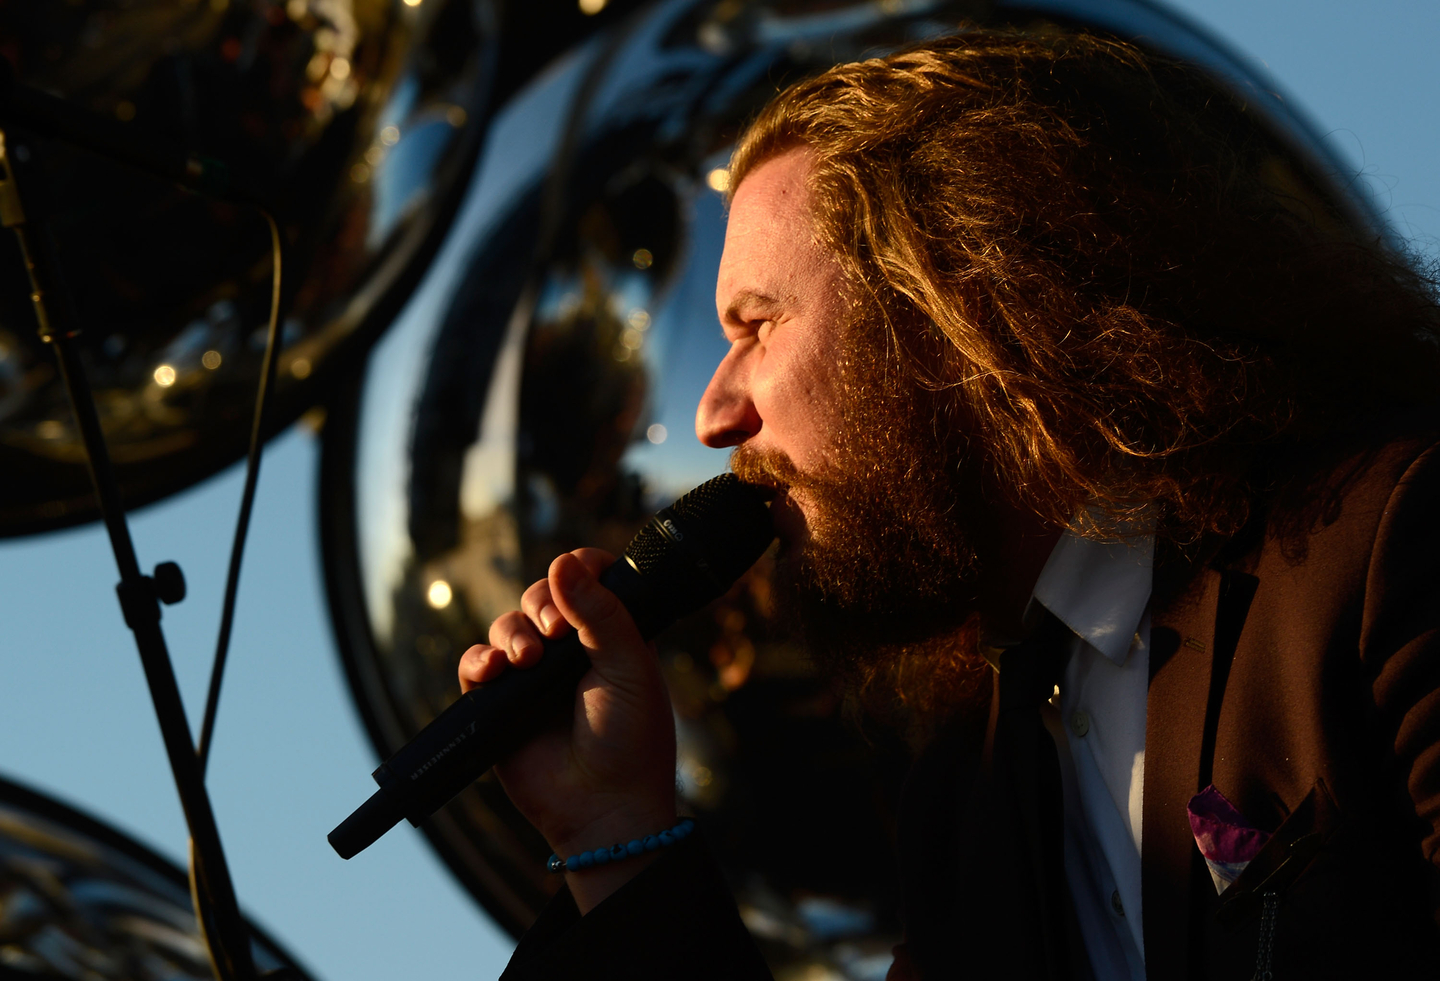 Jim James, 2013. Photo by Mark Davis/Getty Images for SXSW